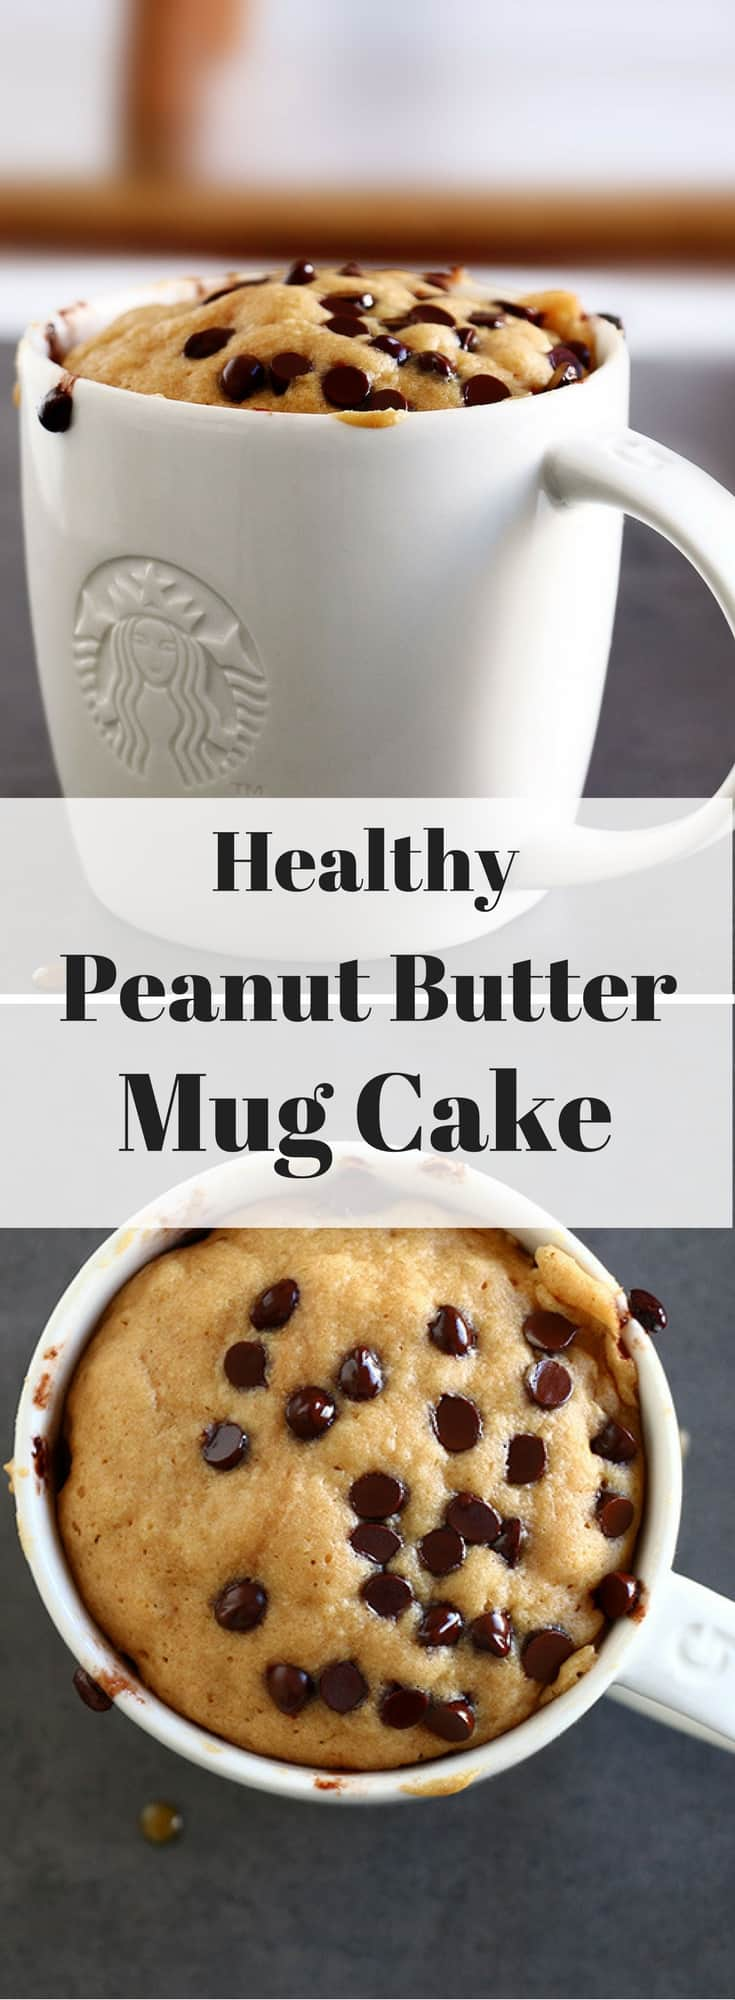 This Healthy Peanut Er Mug Cake Is Scrumptiously Delicious And Can Be Whipped Up In 3min